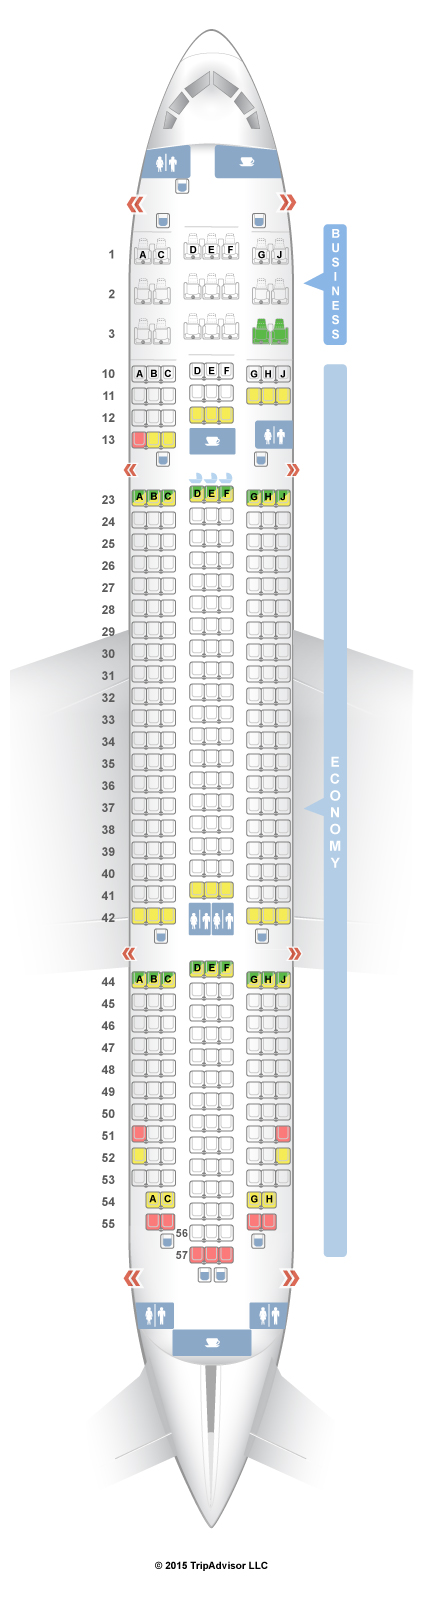 If you need to check specific seats on a plane this is a great - seating chart